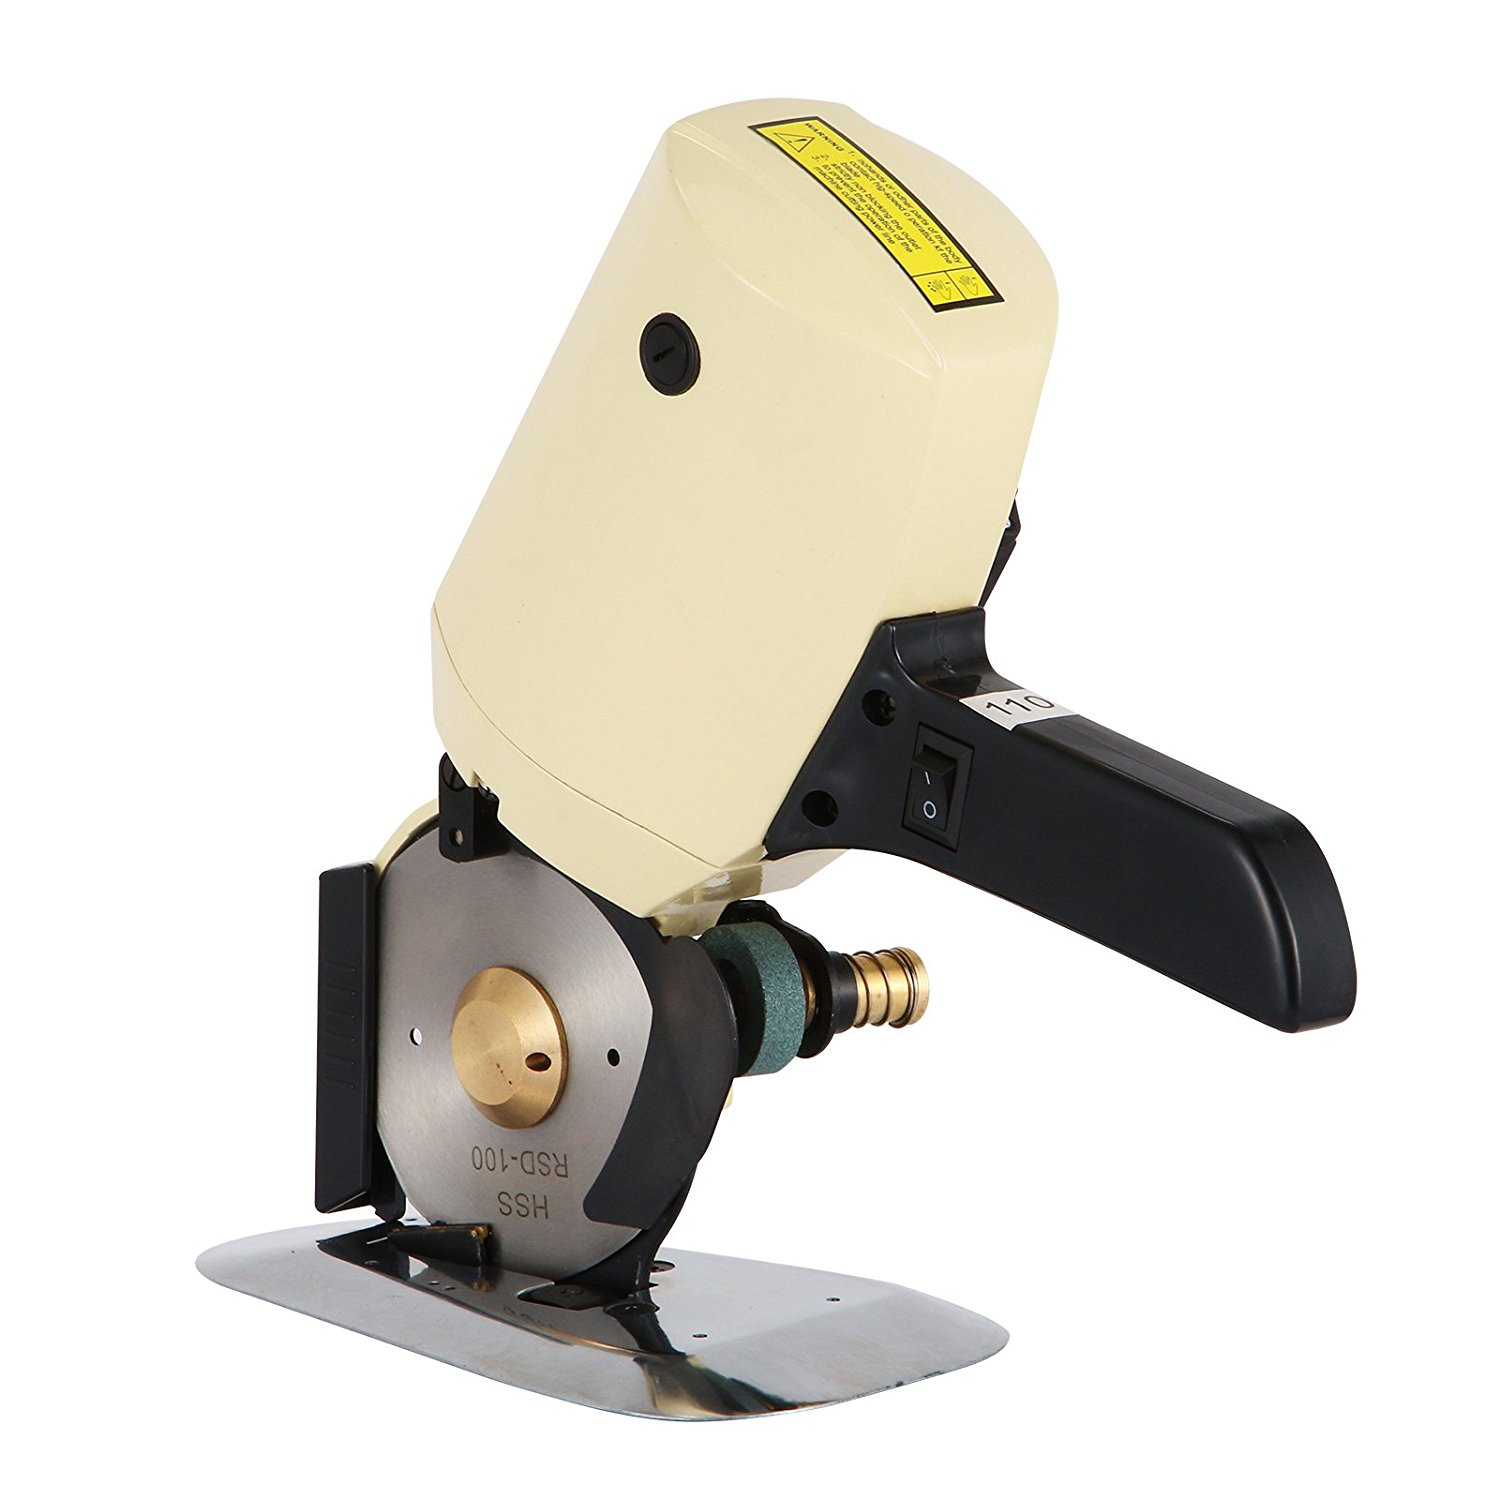 Best cloth cutting machine reviews: The right choice for a master of fabric cutting machine